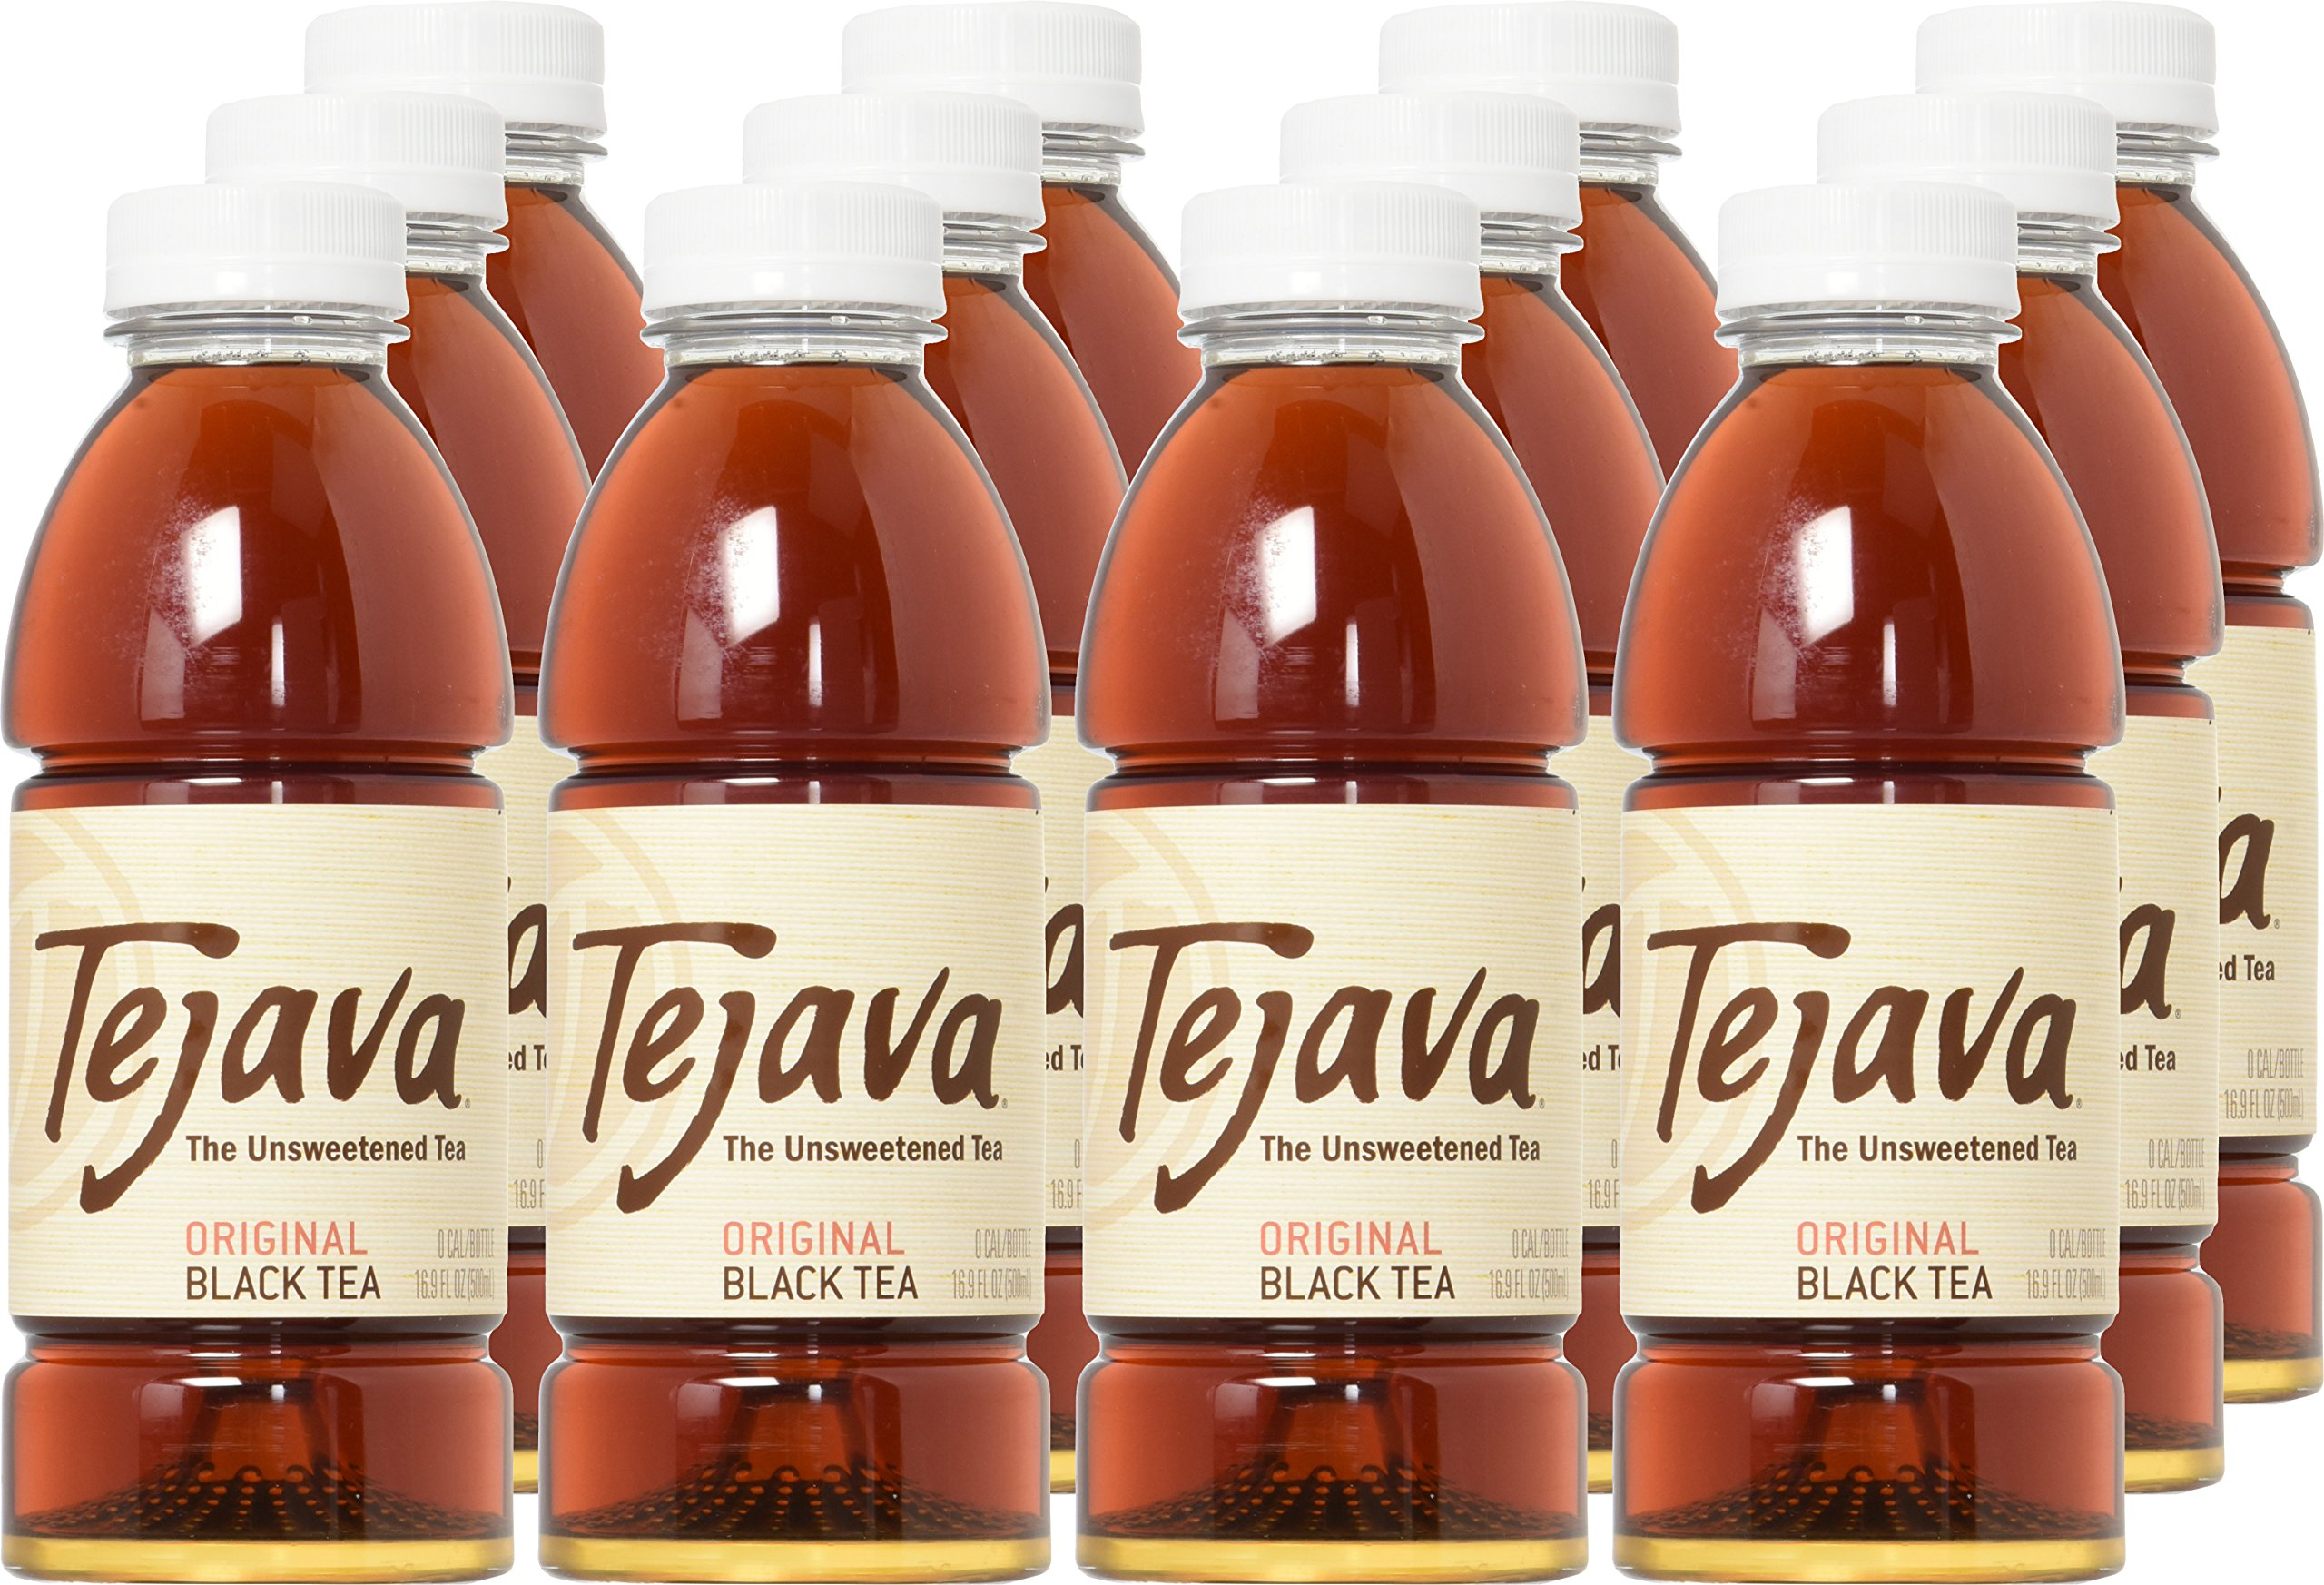 Tejava Original Unsweetened Black Iced Tea, 16.9 oz PET Bottles, Award Winning, Non-GMO-Verified, from Rainforest Alliance-Certified farms (12 Pack) by Tejava (Image #2)